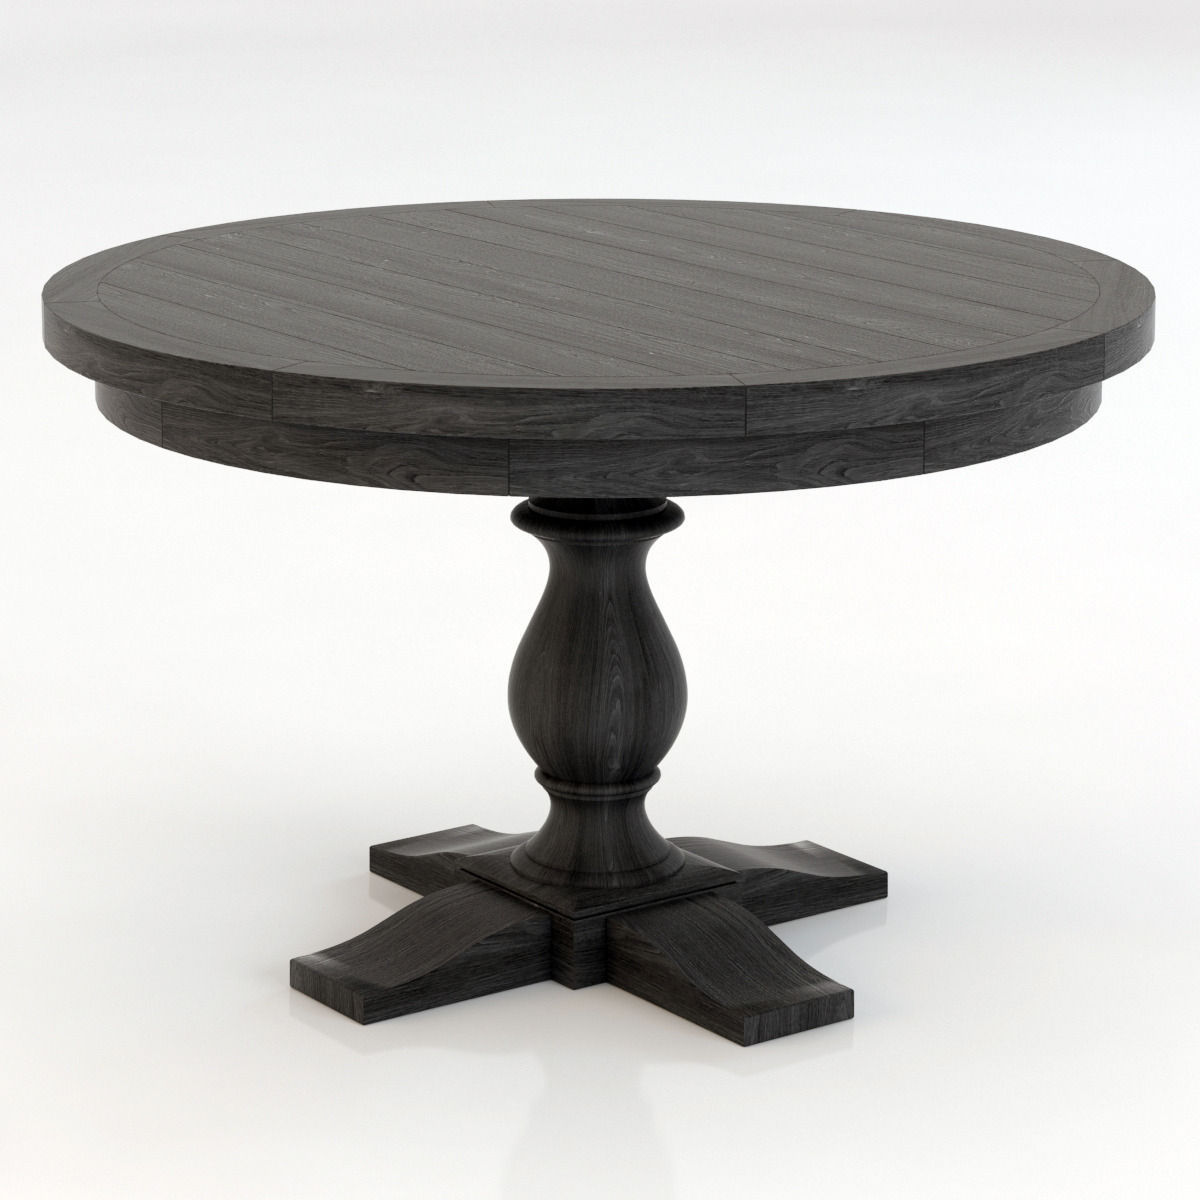 Restoration Hardware Monastery Round Dining Table 3d Model Max Obj 3ds Fbx  Mtl 1 ...